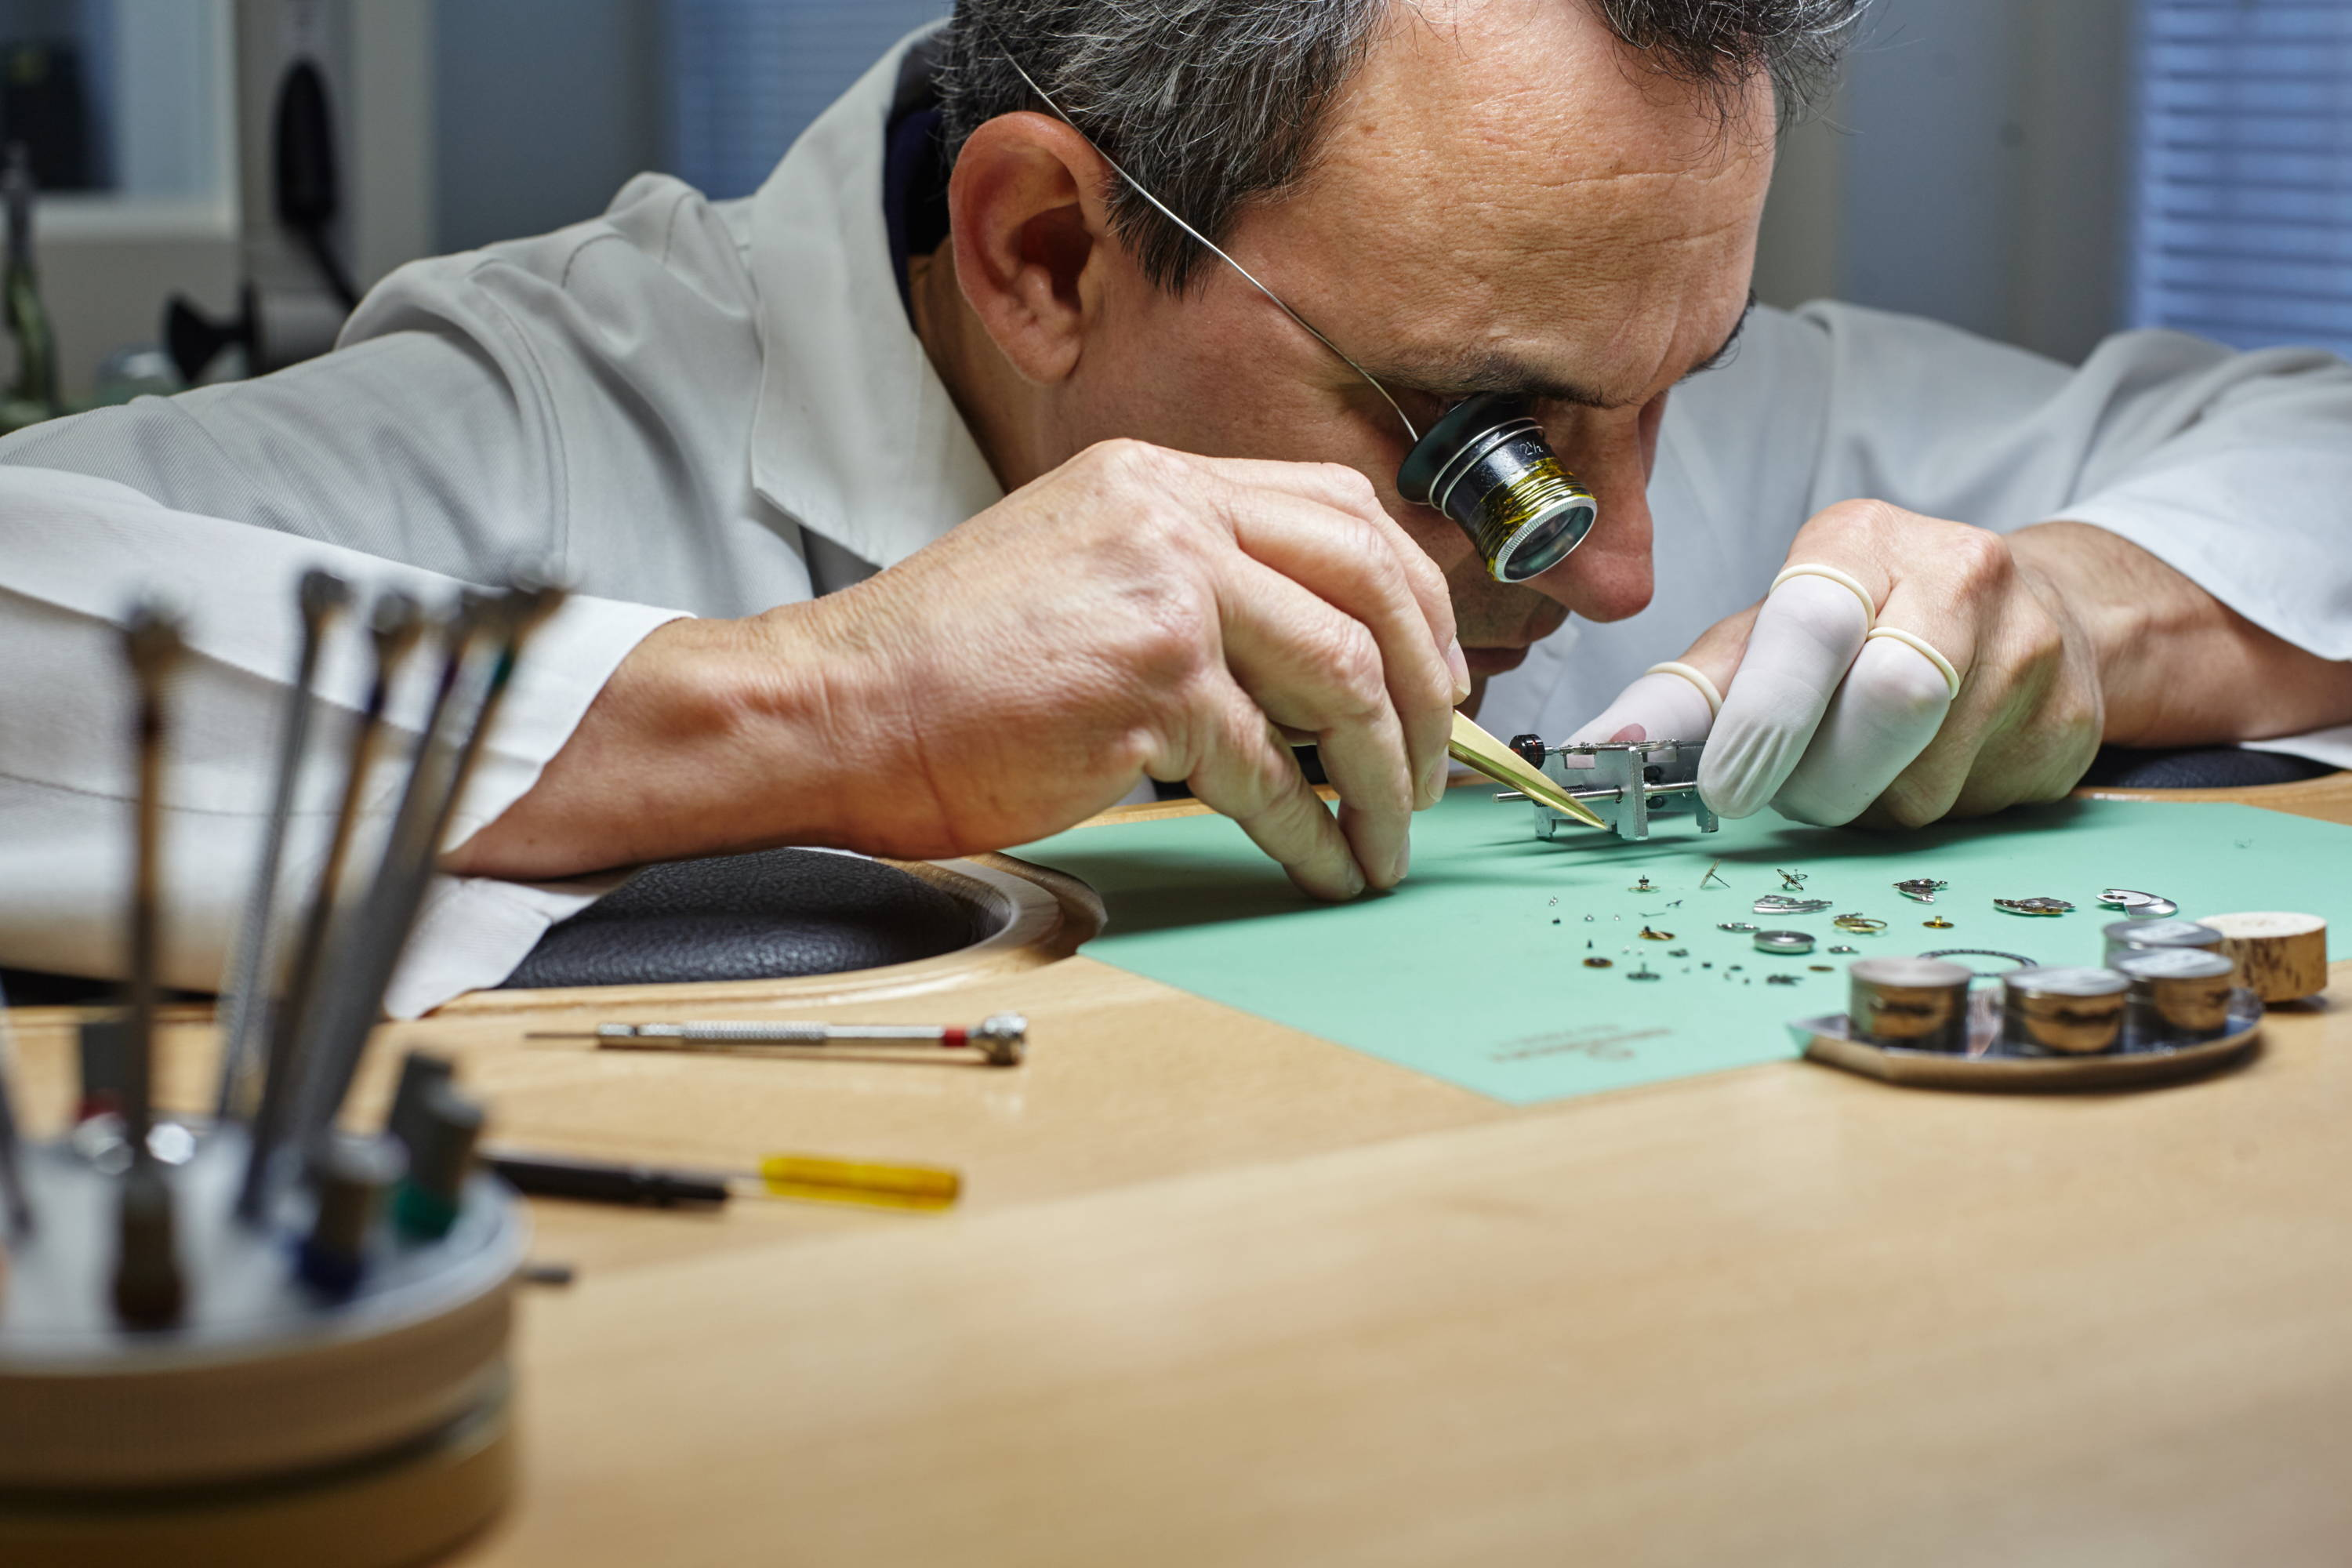 Swiss Watch Craftsmanship